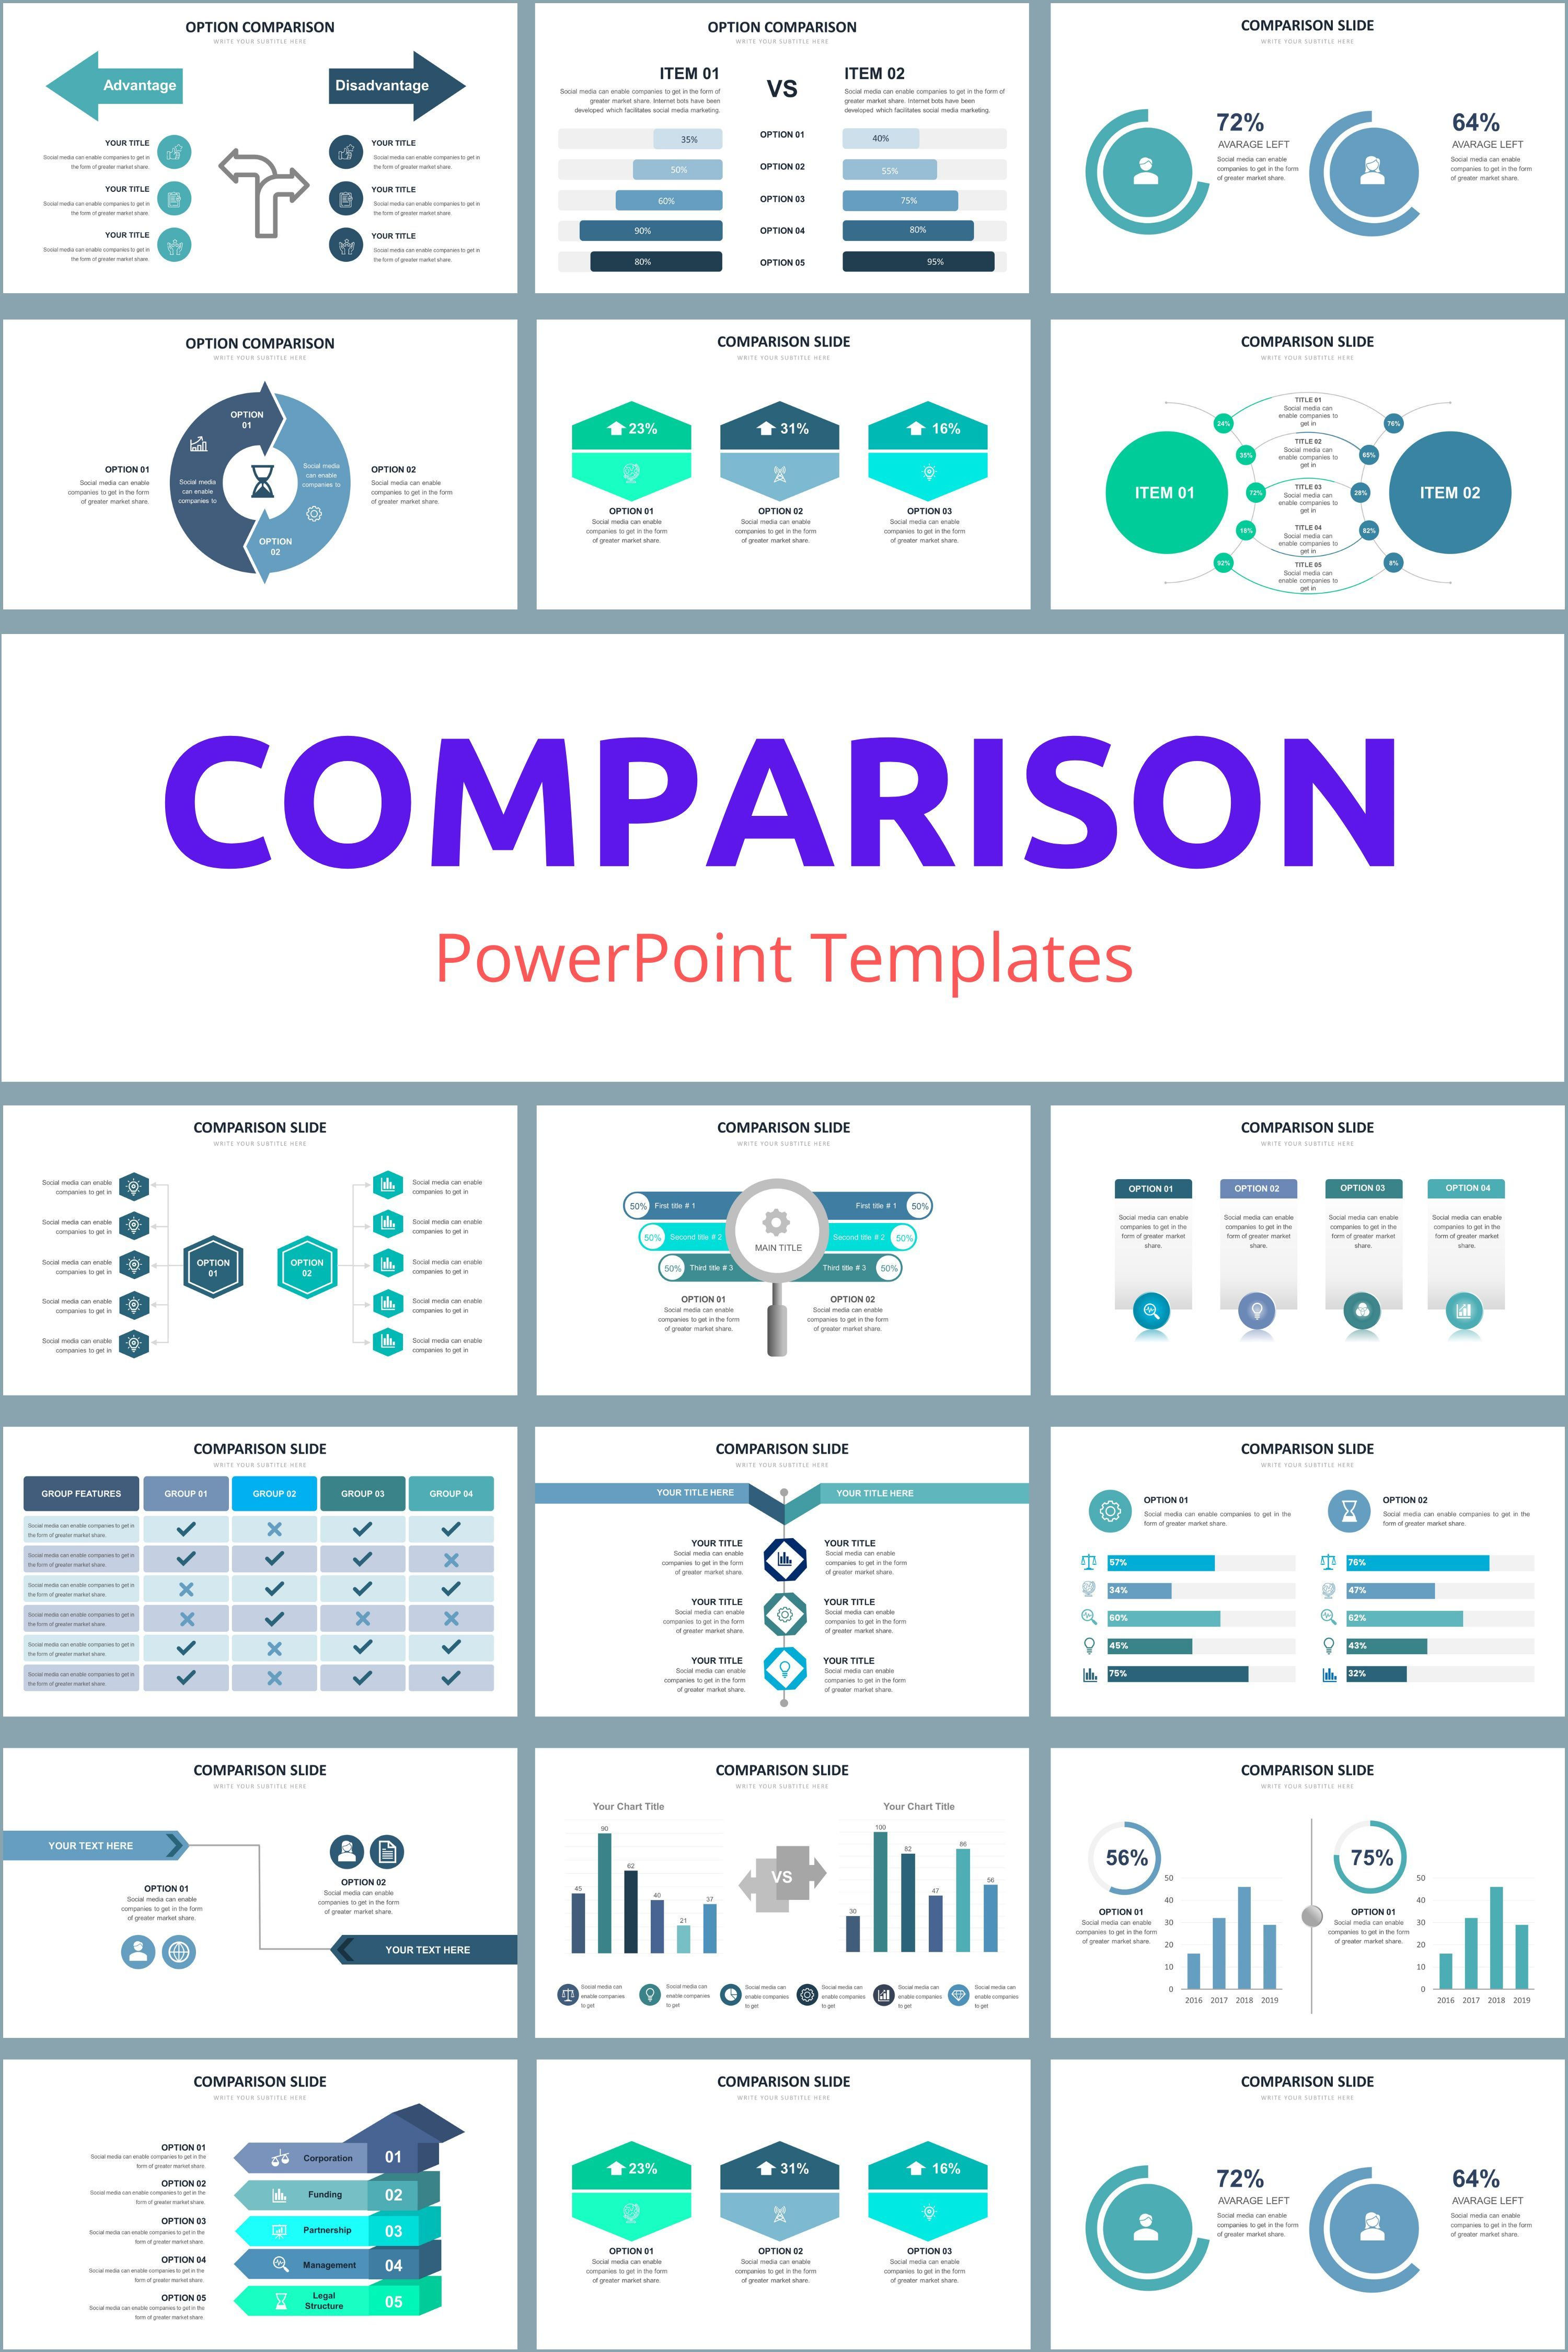 Advertising-Infographics-Comparison-PowerPoint-Templates-20-best-design Advertising Infographics : Comparison PowerPoint Templates - 20 best design infographic templates